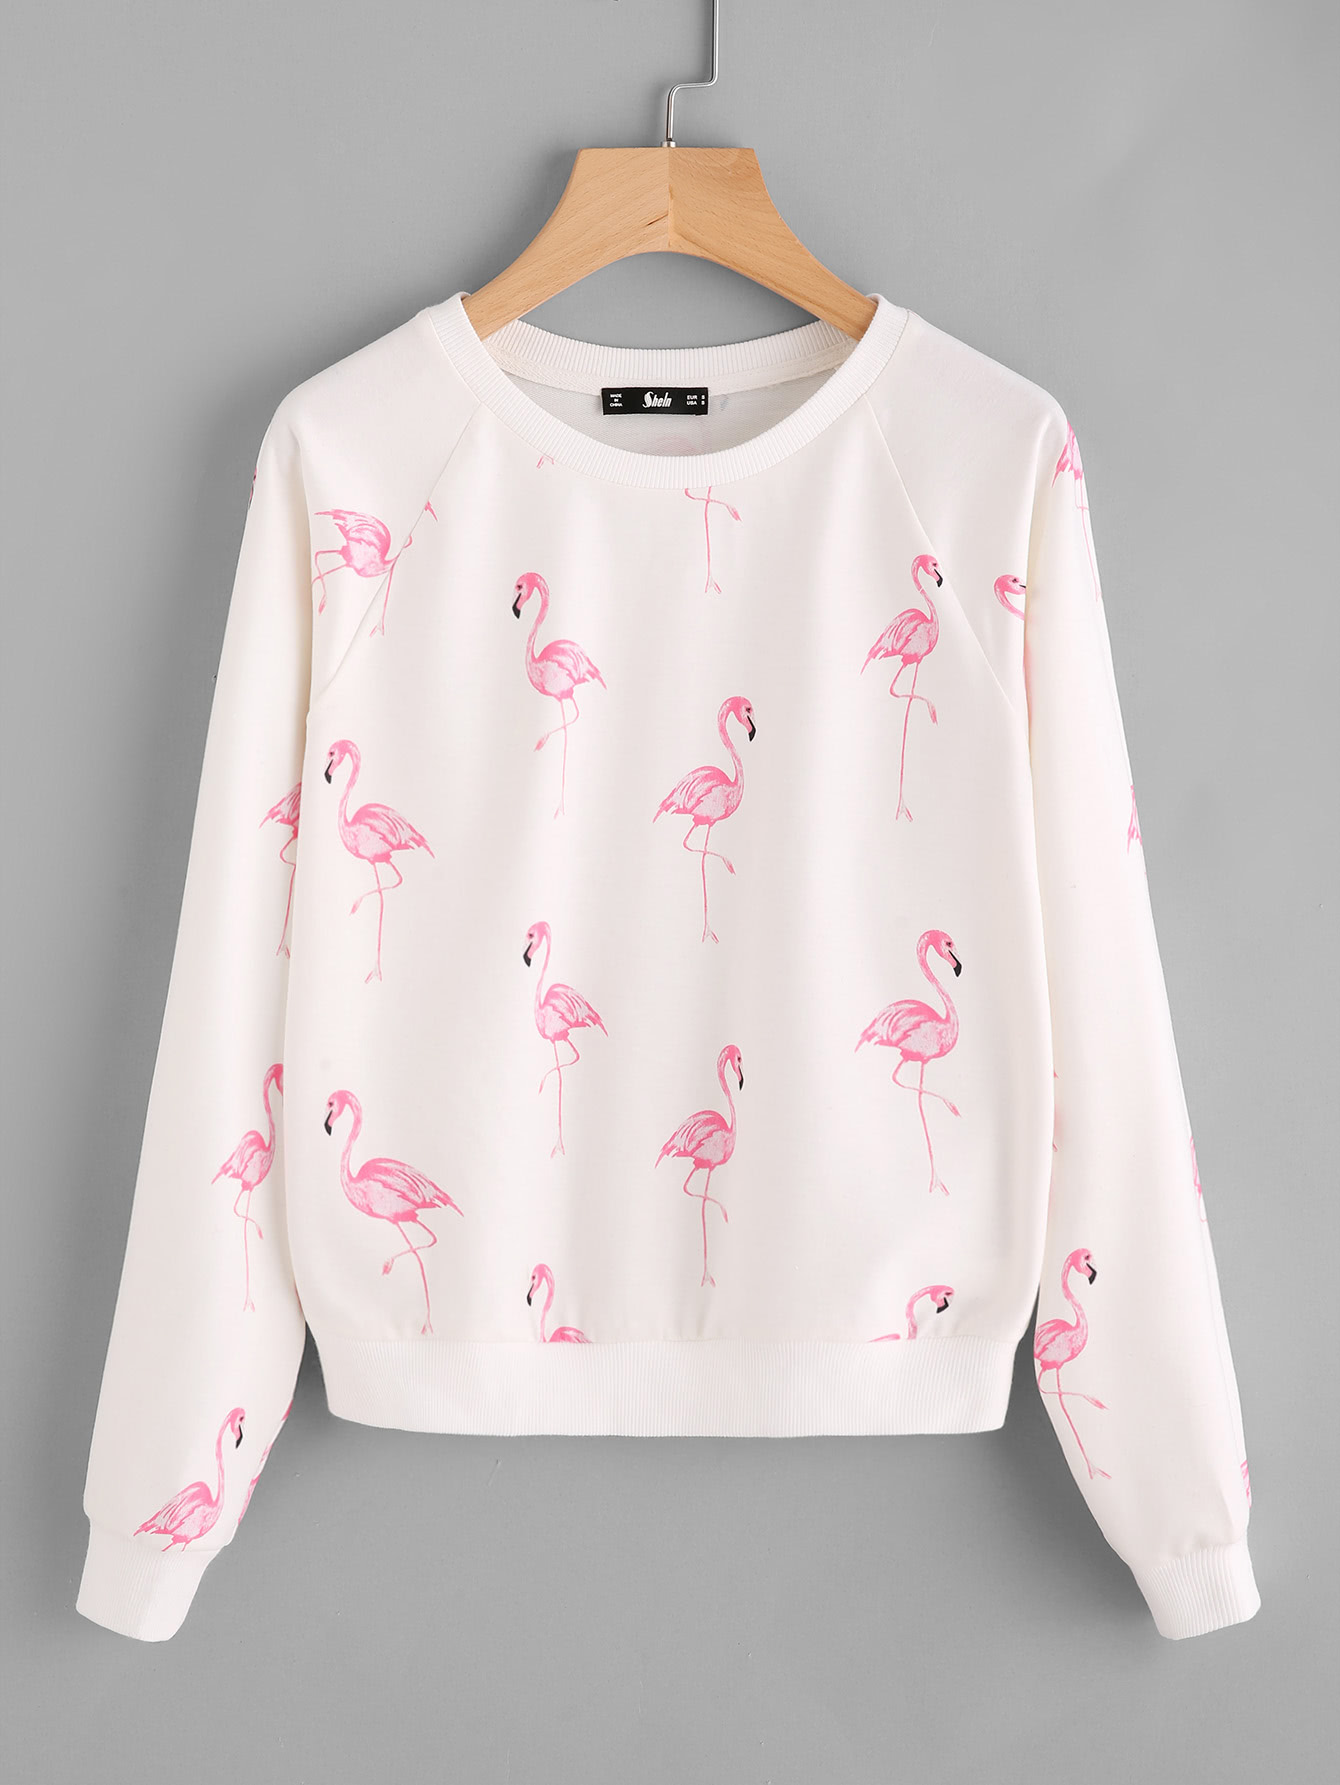 Allover Flamingo Print Raglan Sleeve Sweatshirt allover flamingo print tee